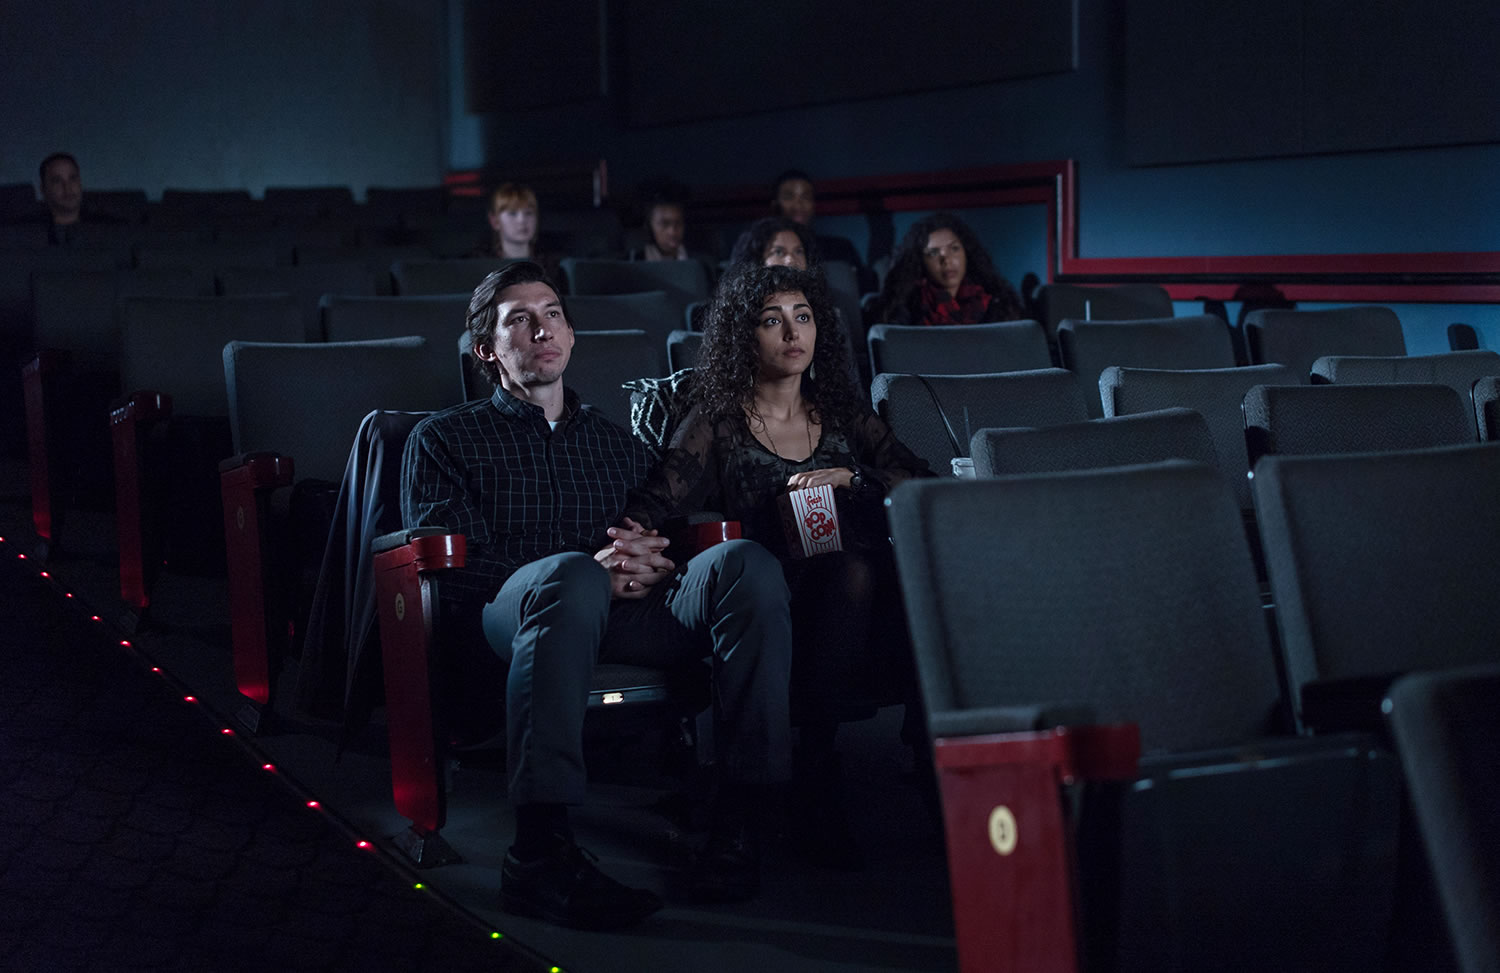 couple sitting in movie theather, paterson movie